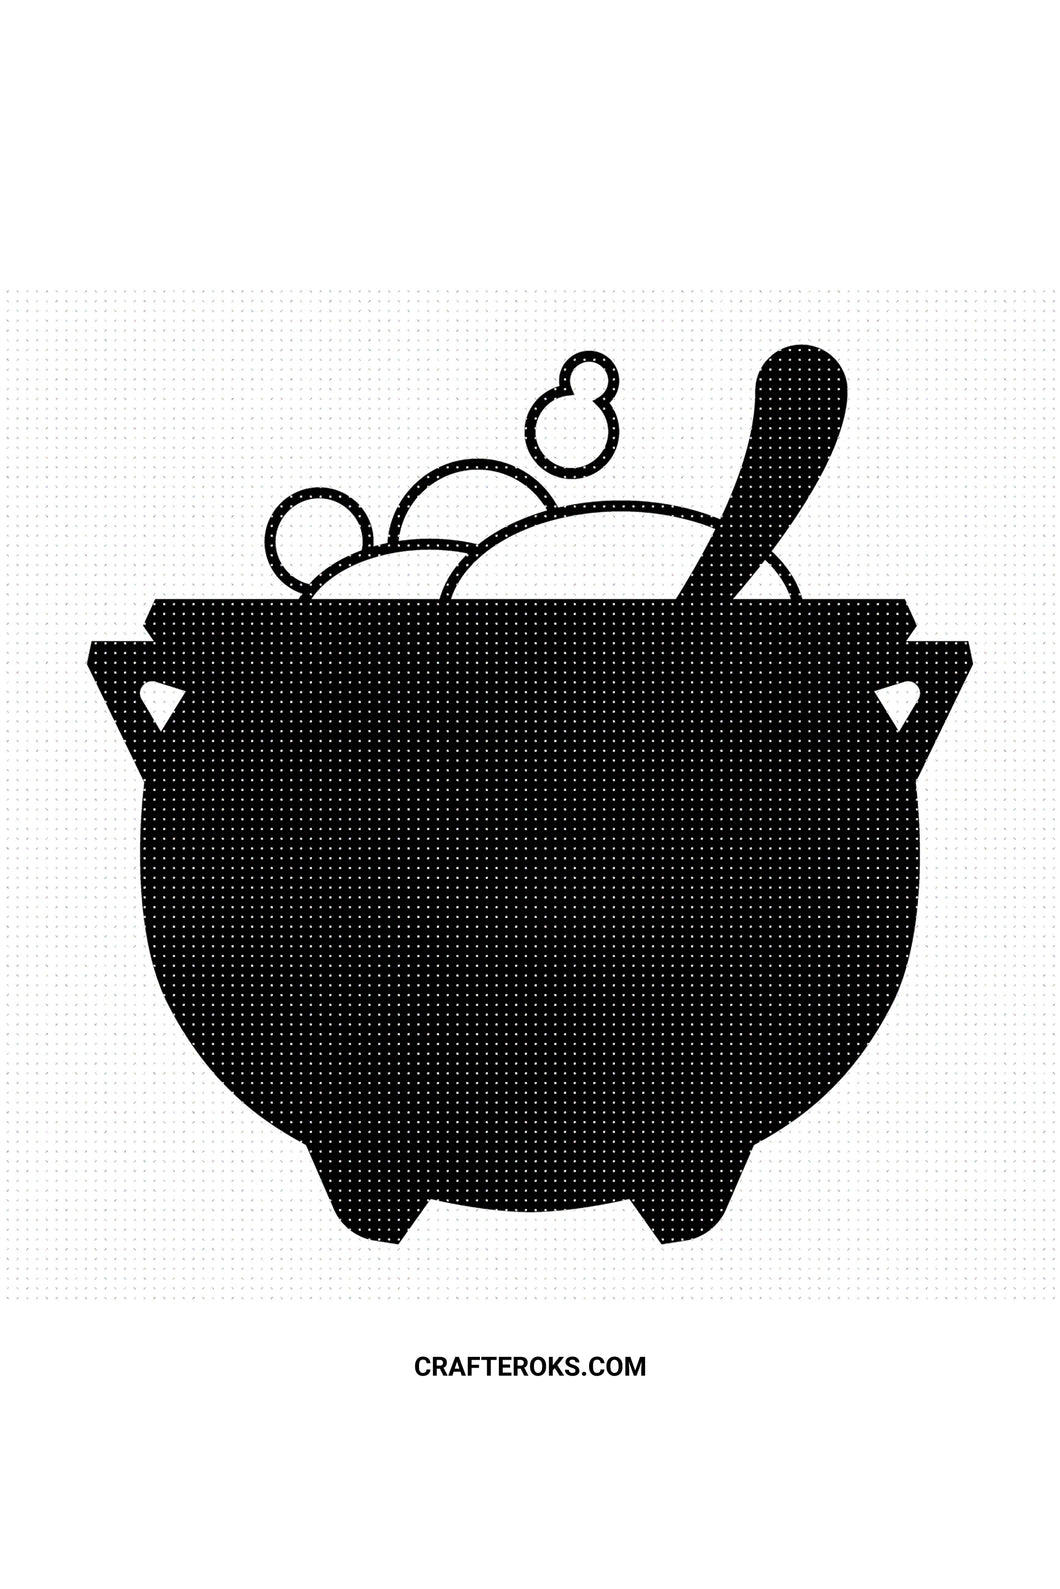 FREE cauldron for Personal Use SVG, PNG clipart, DXF, clipart, EPS, vector cut file instant download